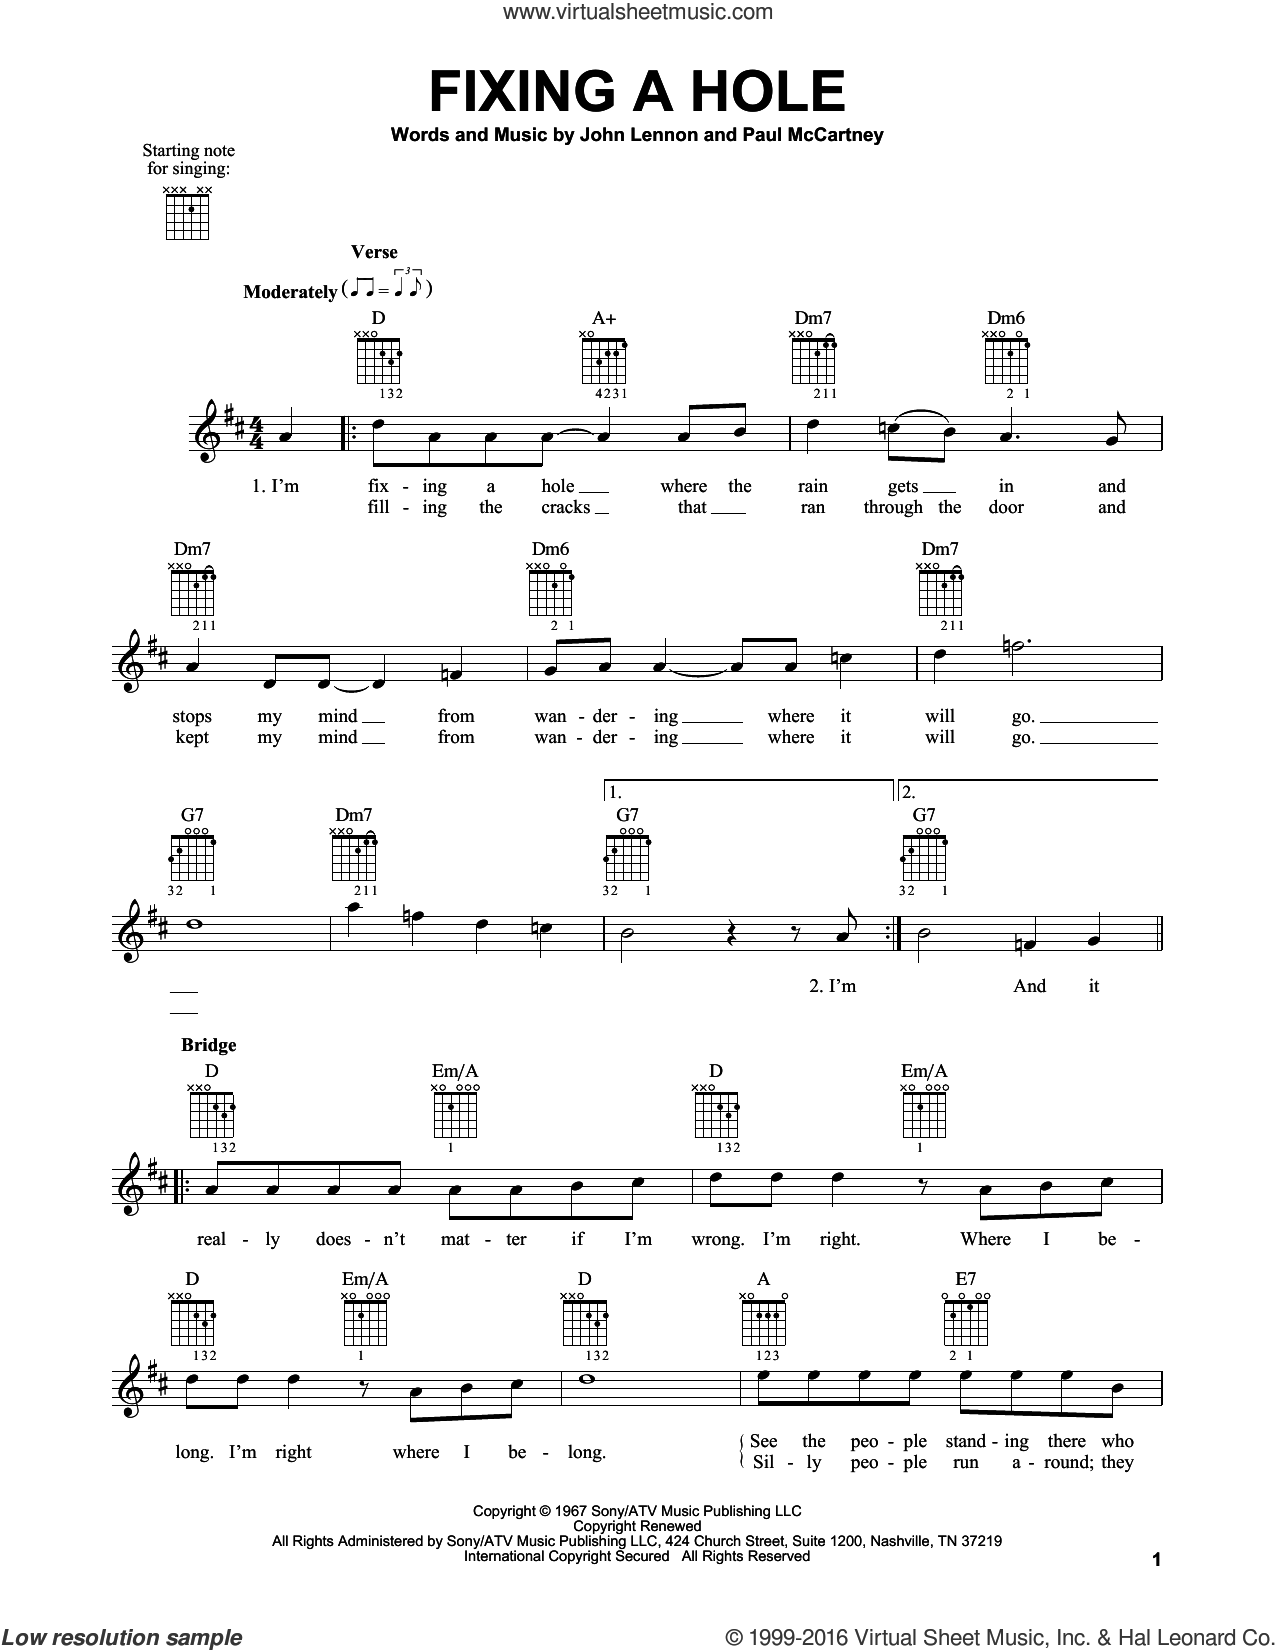 Fixing A Hole sheet music for guitar solo (chords) by Paul McCartney, The Beatles and John Lennon. Score Image Preview.